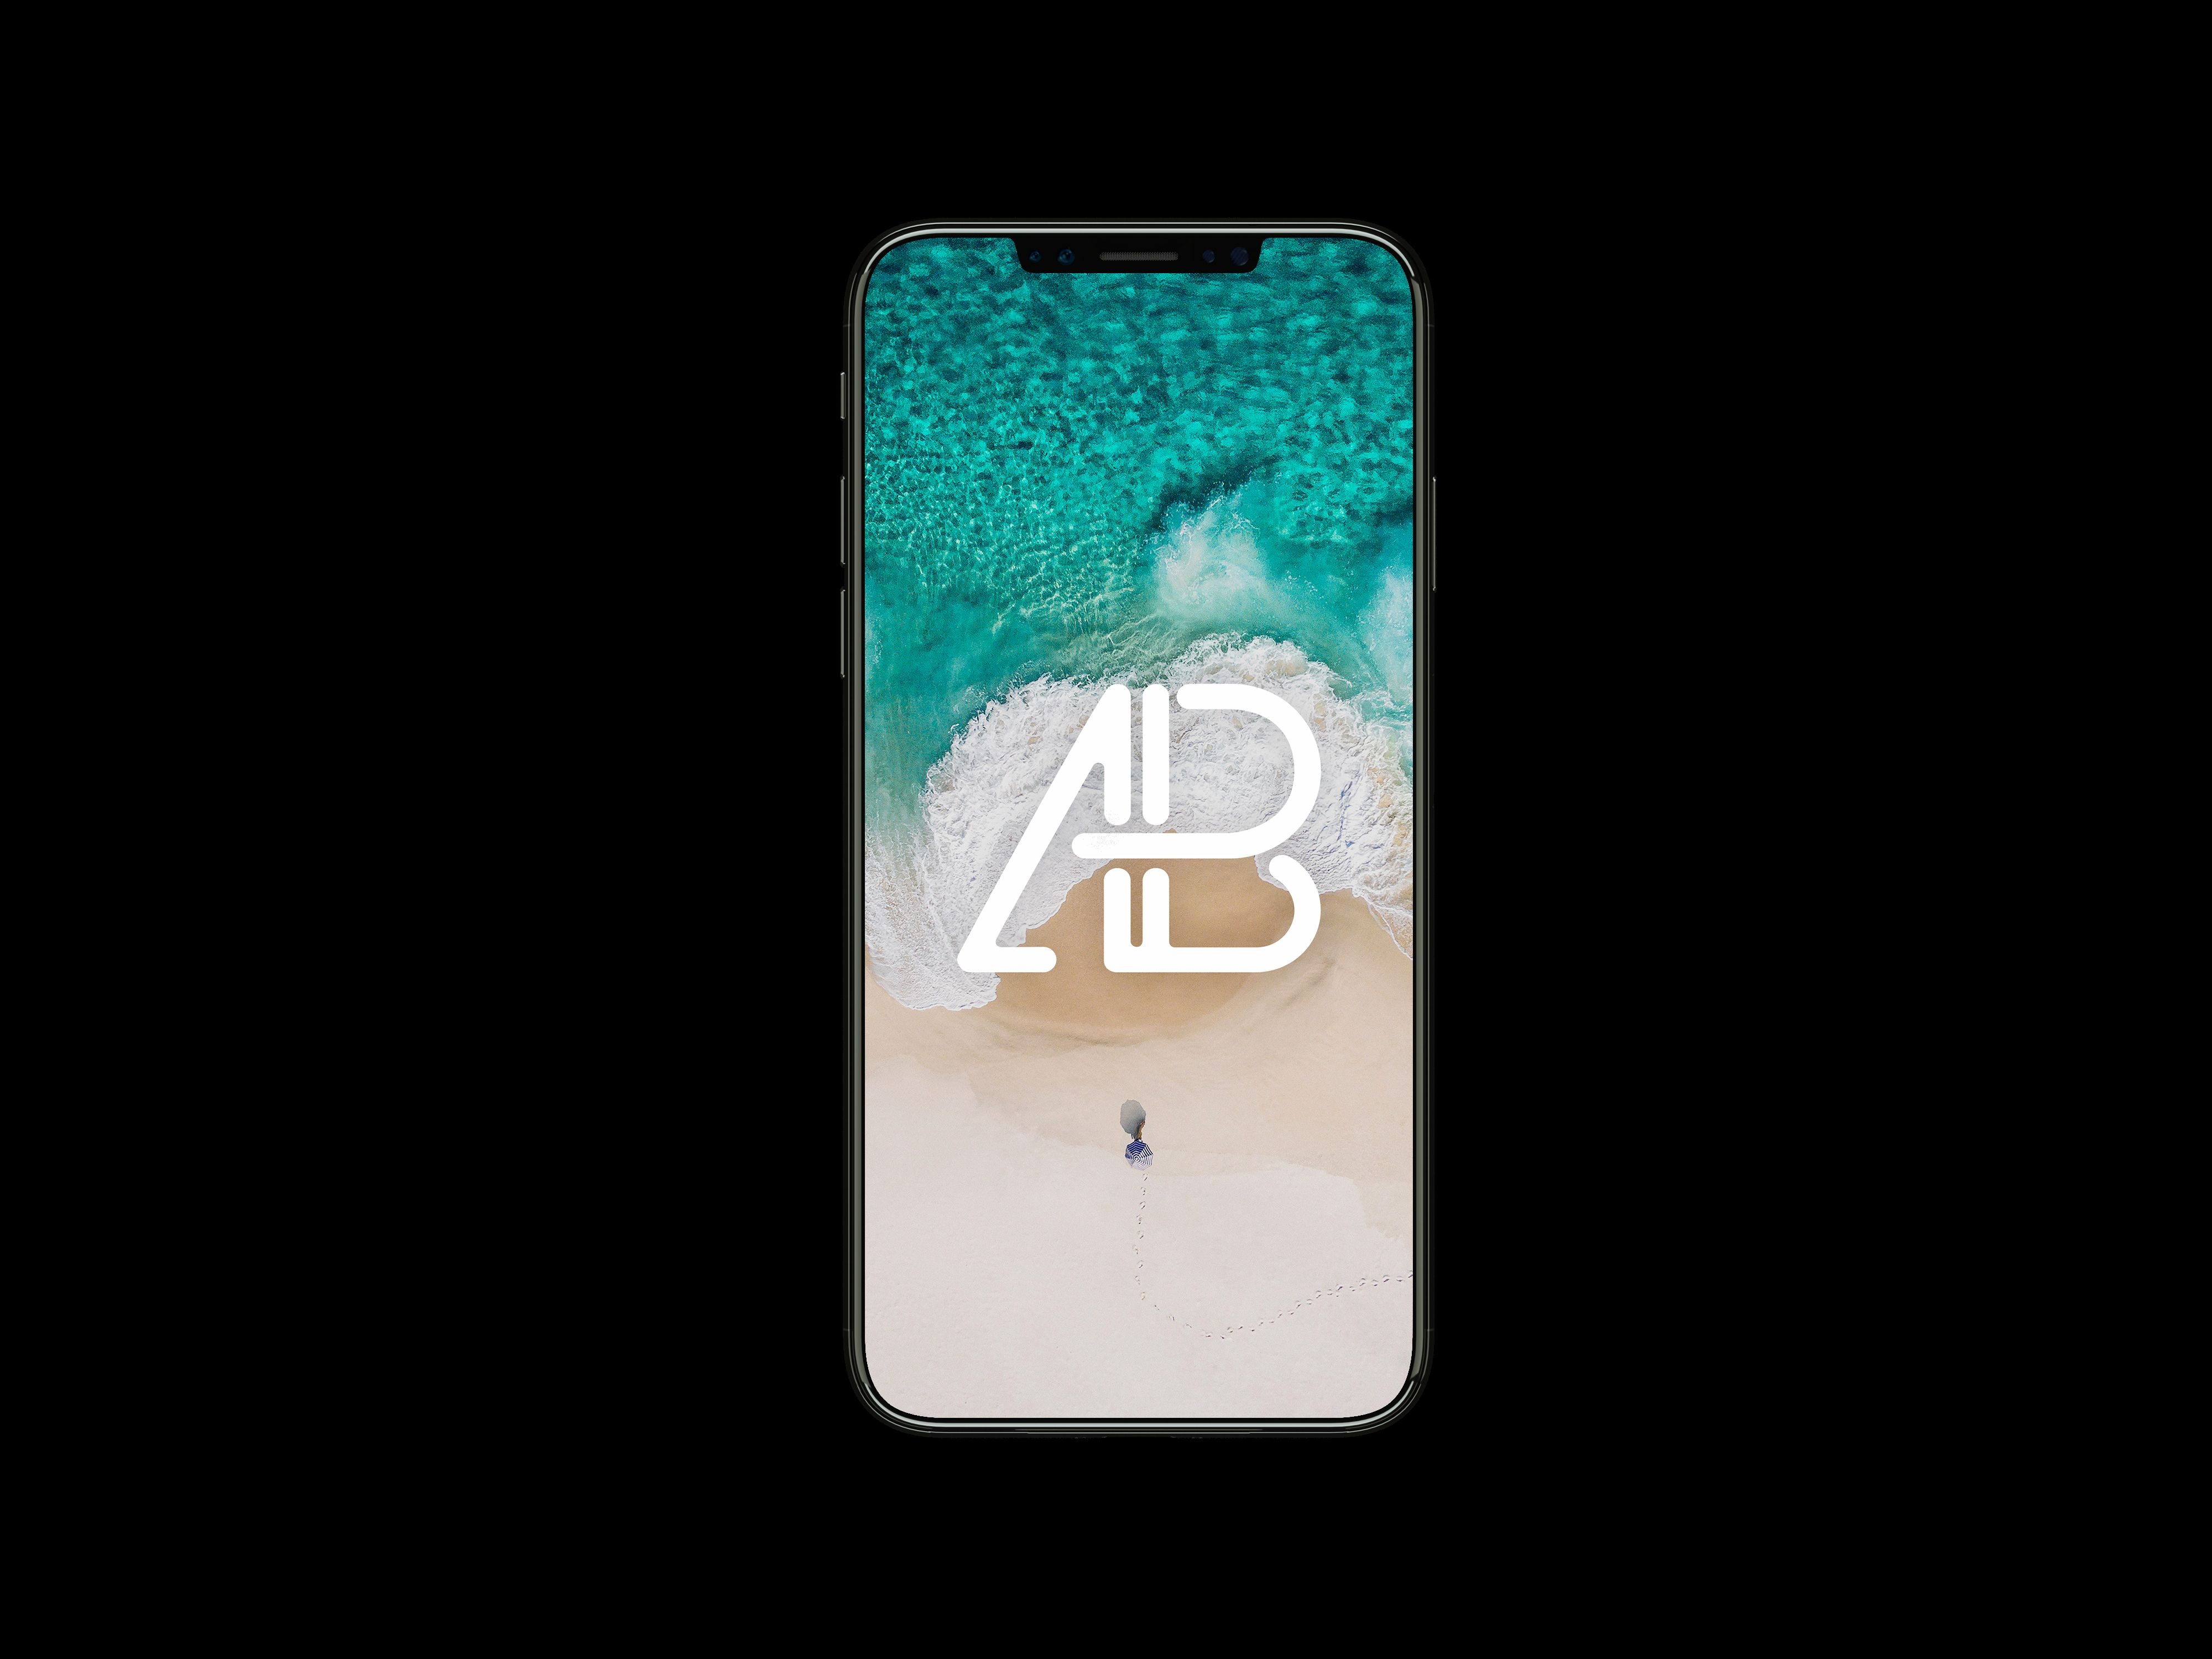 Front View iPhone X Mockup Vol.2 Iphone psd, Free iphone